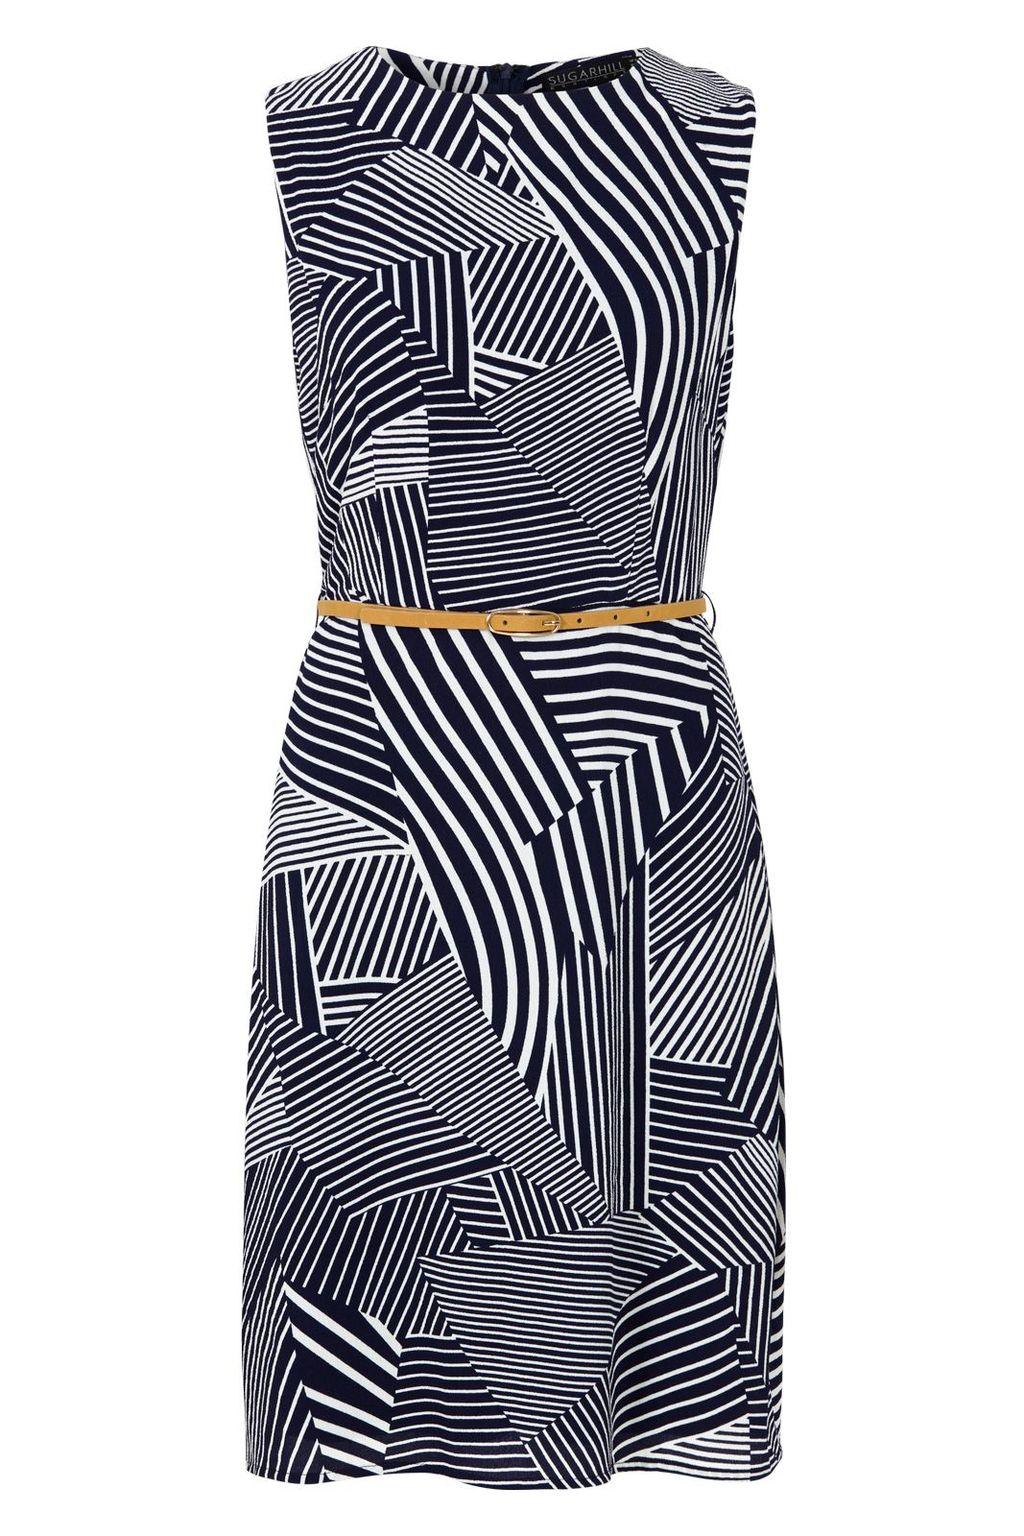 Evelyn Stripe Dress, Multi Coloured - style: shift; neckline: round neck; fit: tailored/fitted; sleeve style: sleeveless; waist detail: belted waist/tie at waist/drawstring; predominant colour: charcoal; length: just above the knee; fibres: polyester/polyamide - 100%; sleeve length: sleeveless; pattern type: fabric; pattern size: big & busy; pattern: patterned/print; texture group: other - light to midweight; occasions: creative work; season: s/s 2016; wardrobe: highlight